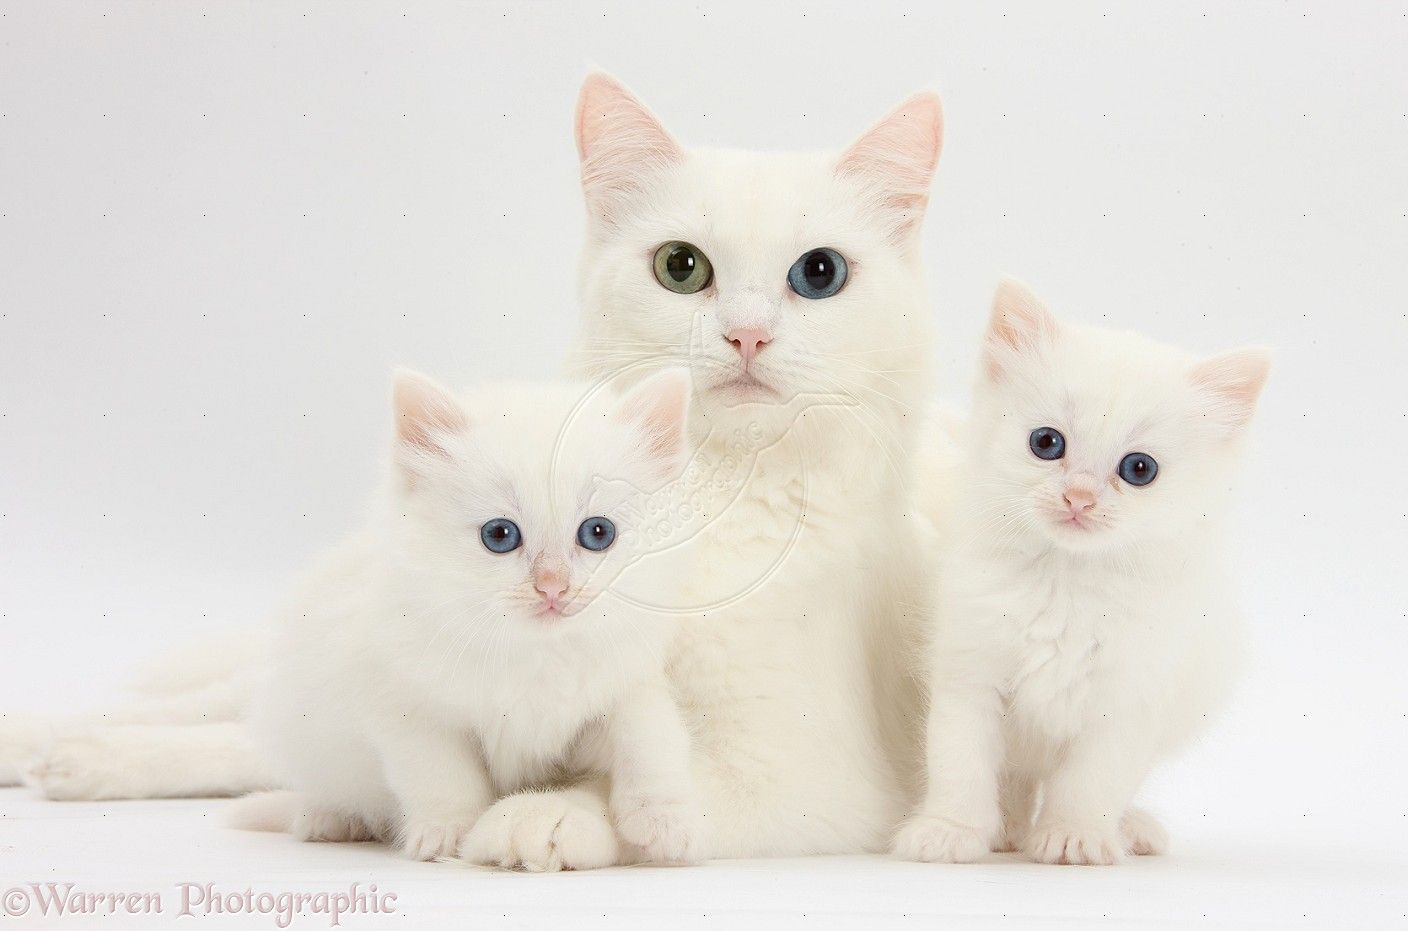 Cat Awesomely Interesting Facts Images Videos White Kittens Cats And Kittens Cute Cats And Kittens